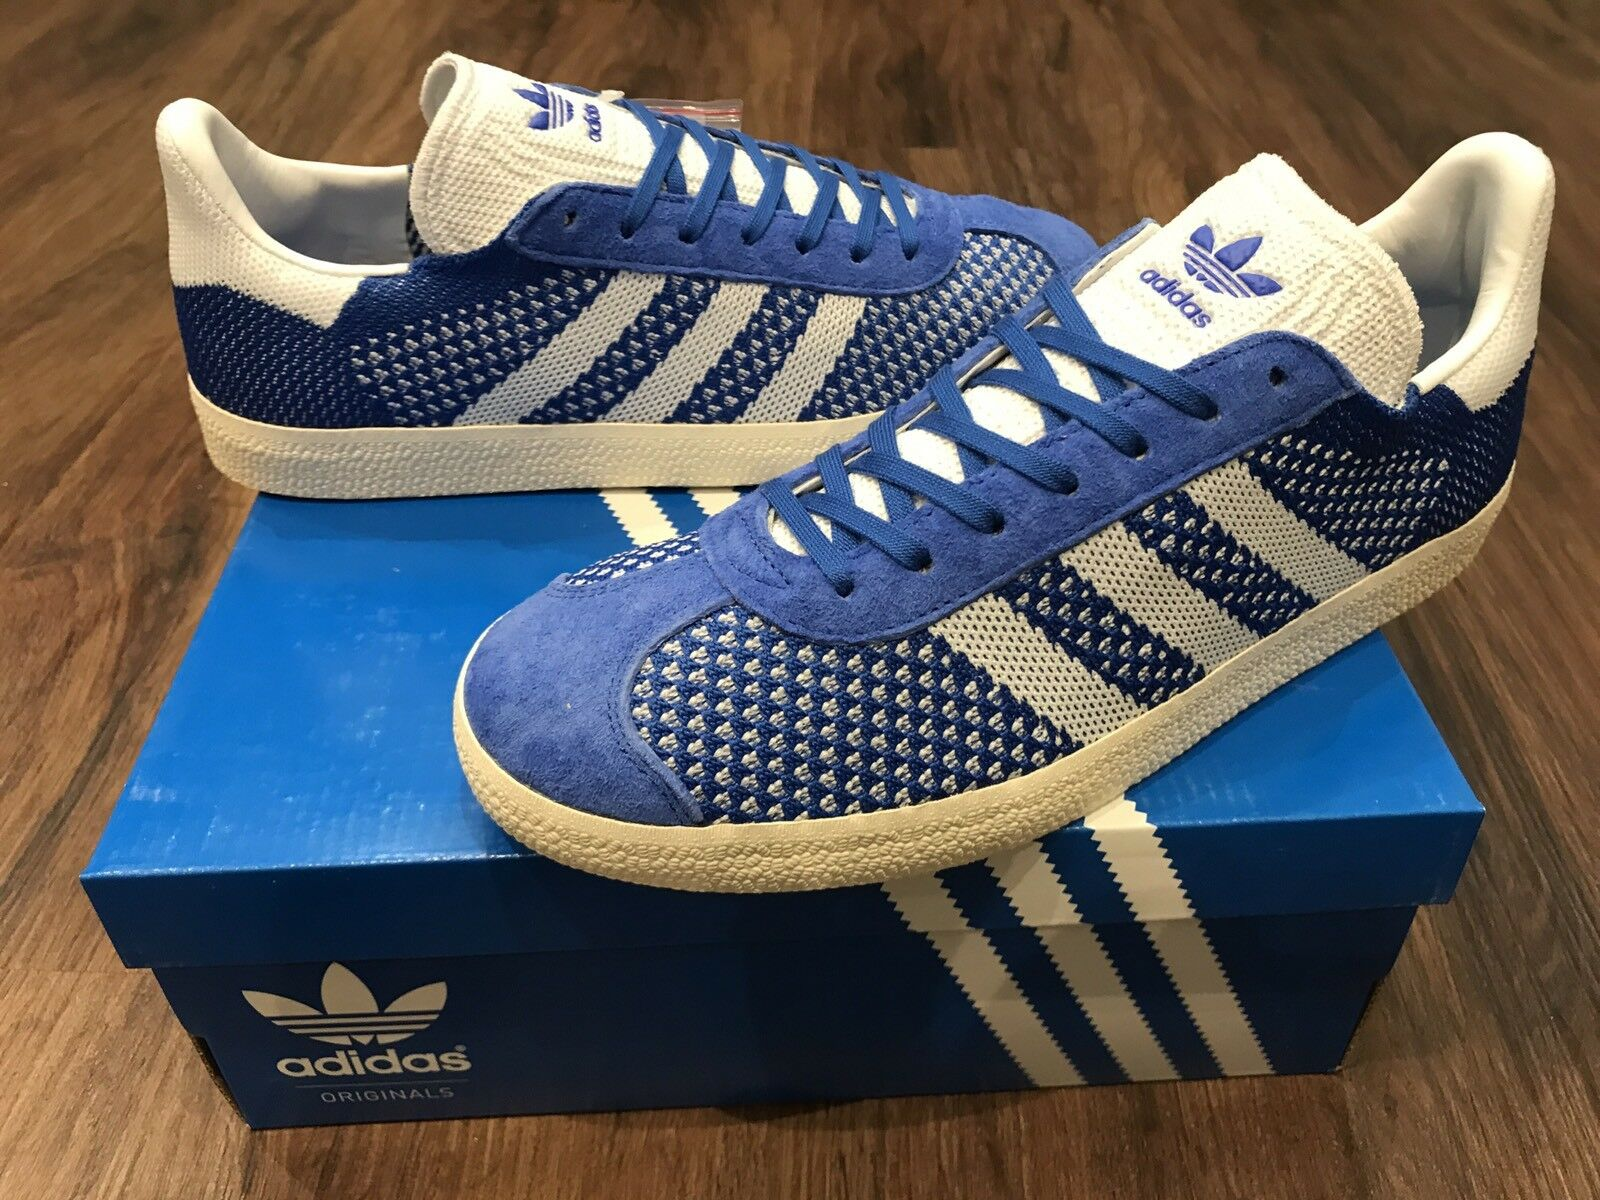 adidas Ace Football Tango 17 PureControl BY2819 Hommes Football Ace Trainers~Soccer~UK6.5 - 11 08d391